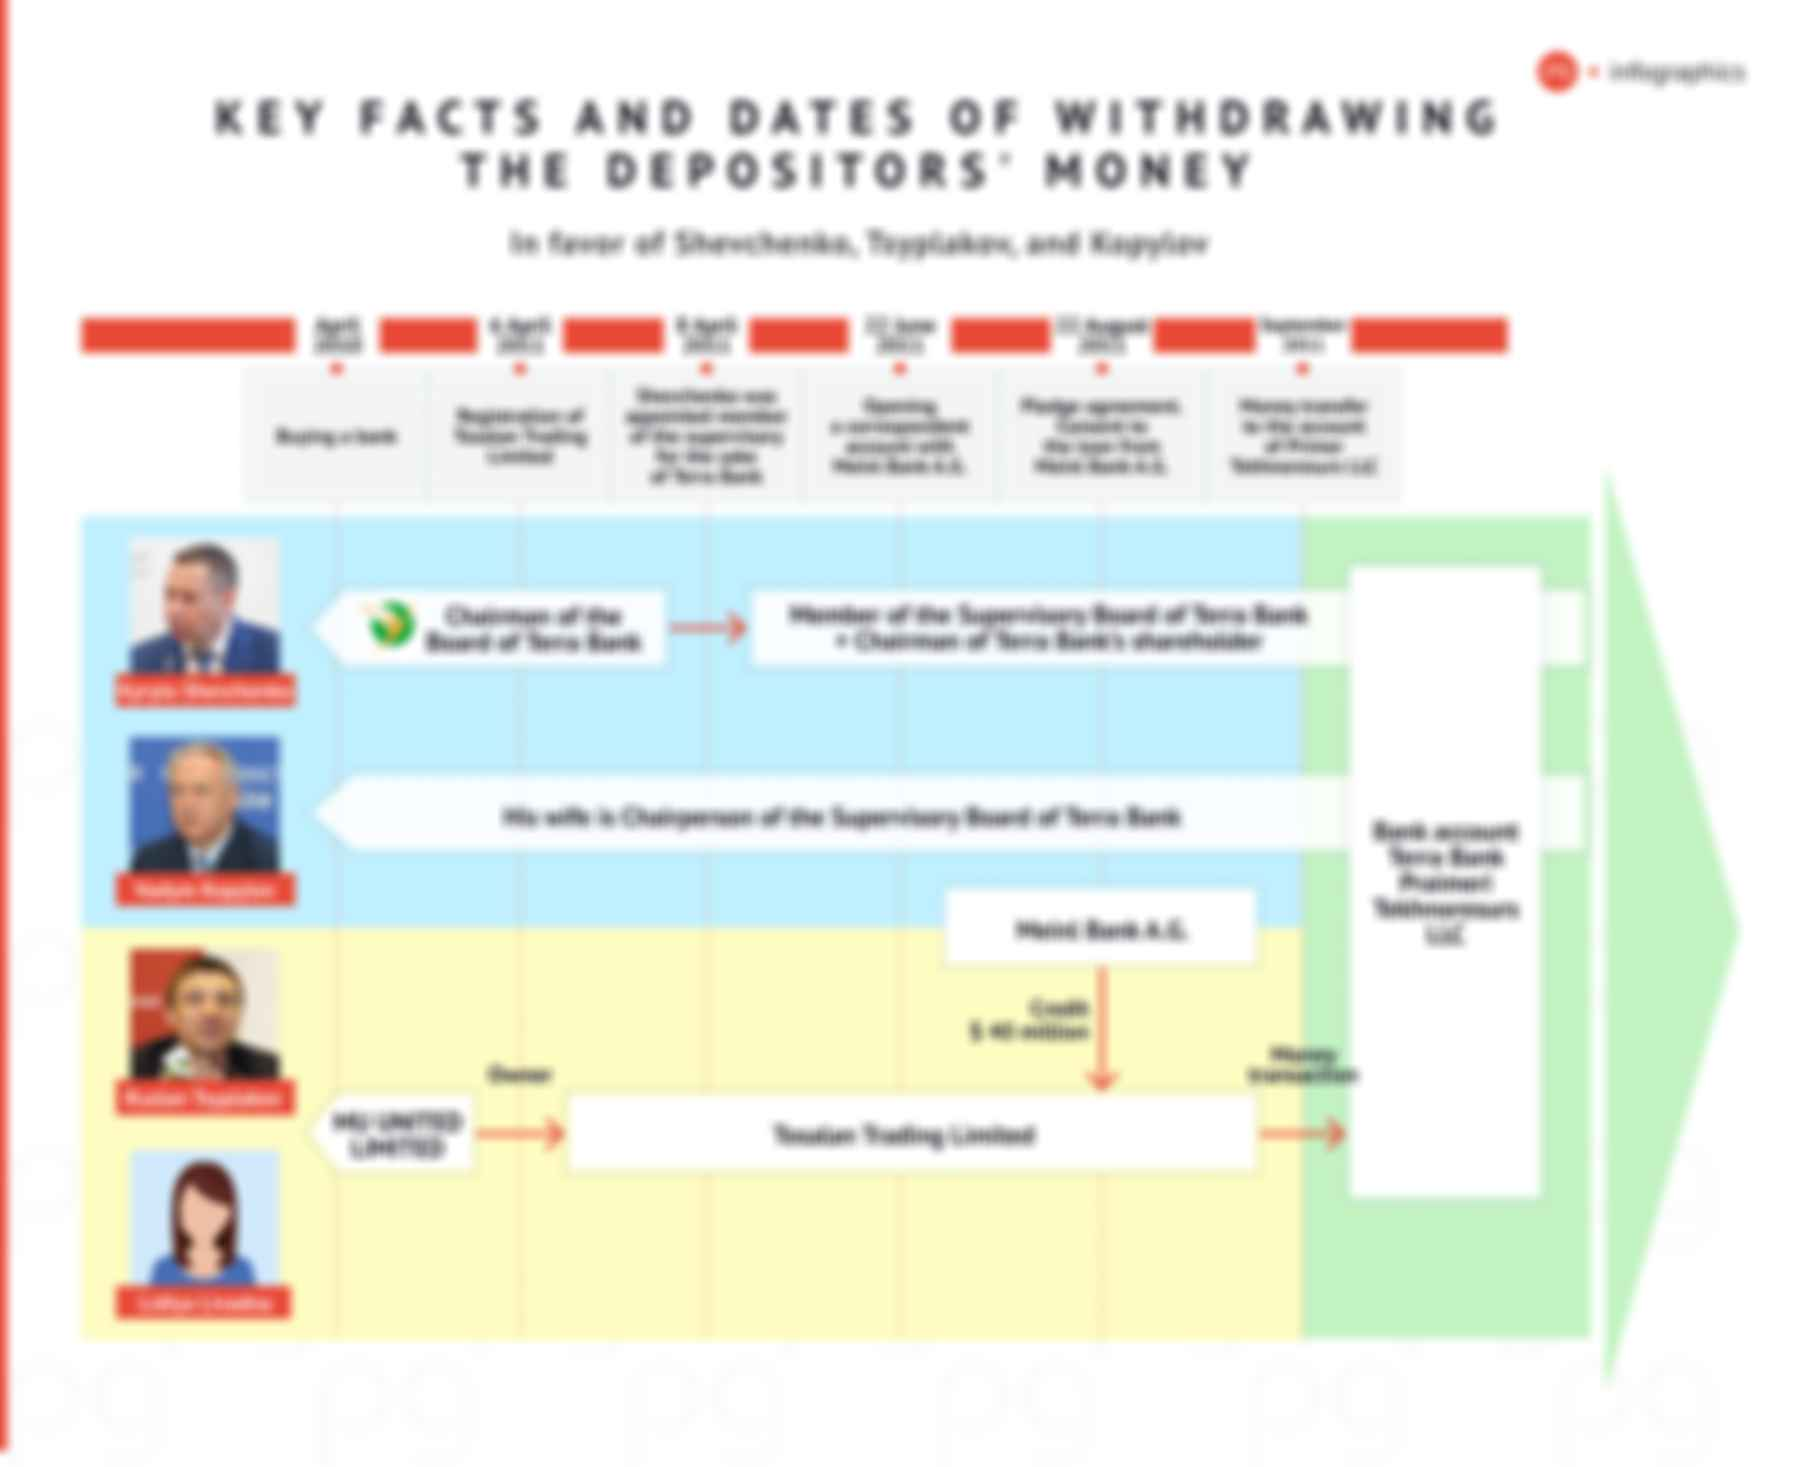 Key facts and dates of withdrawing the depositors' money (in favor of Shevchenko, Tsyplakov and Kopylov). Infographics: The Page